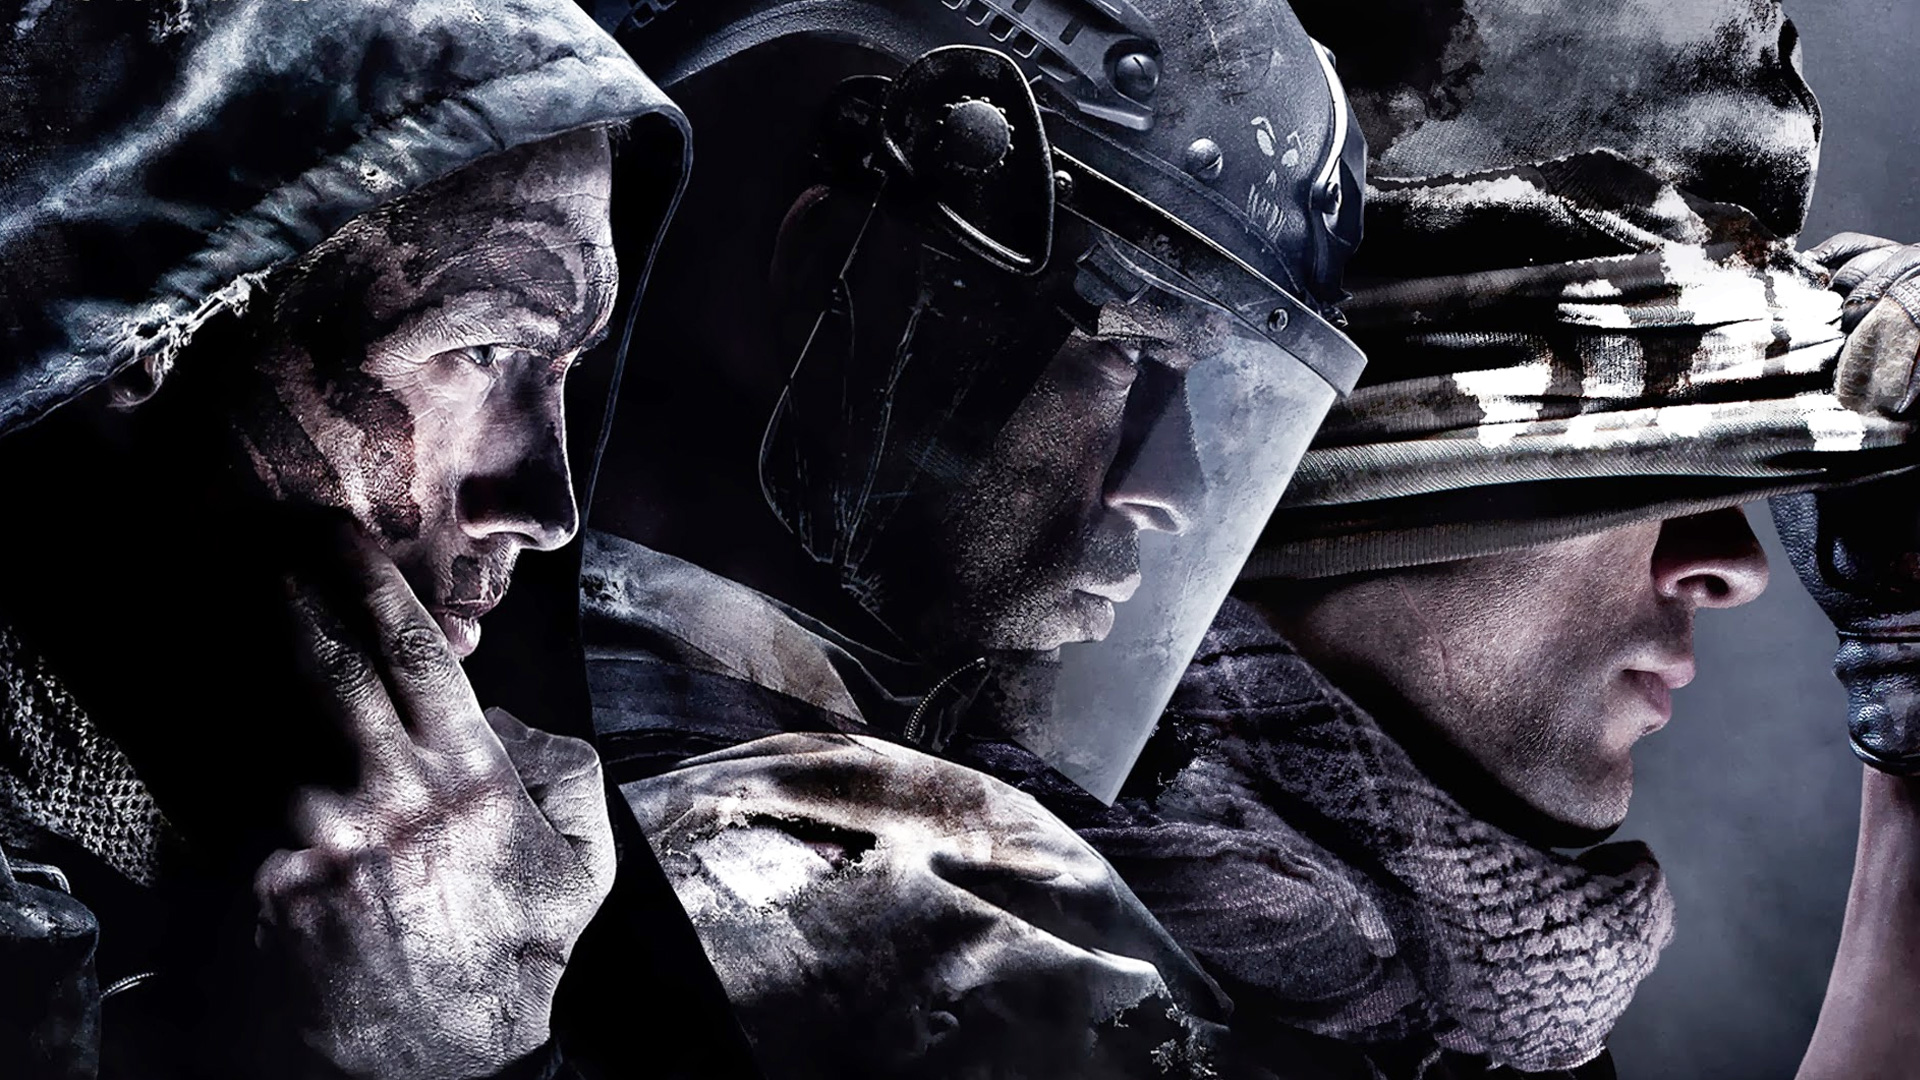 Call of Duty Ghosts Wallpapers 1920x1080 in HD | Call of ...